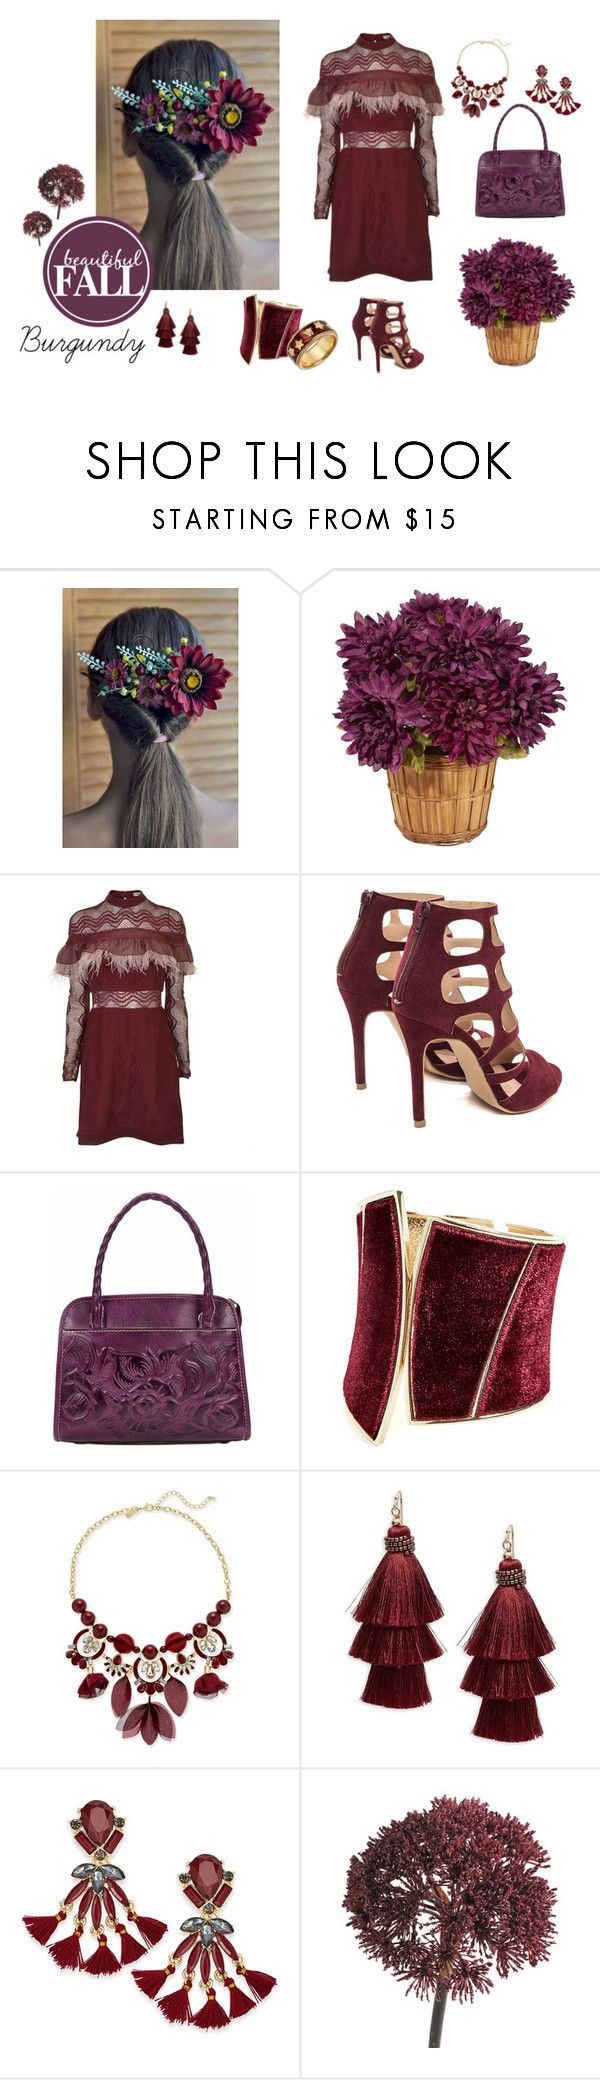 """""""***"""" by vualia ❤ liked on Polyvore featuring Three Floor, Patricia Nash, GUESS by Marciano, INC International Concepts, Design Lab, Abigail Ahern, Wellendorff, fallparty, burgundyautumn and burgundyaccessories"""